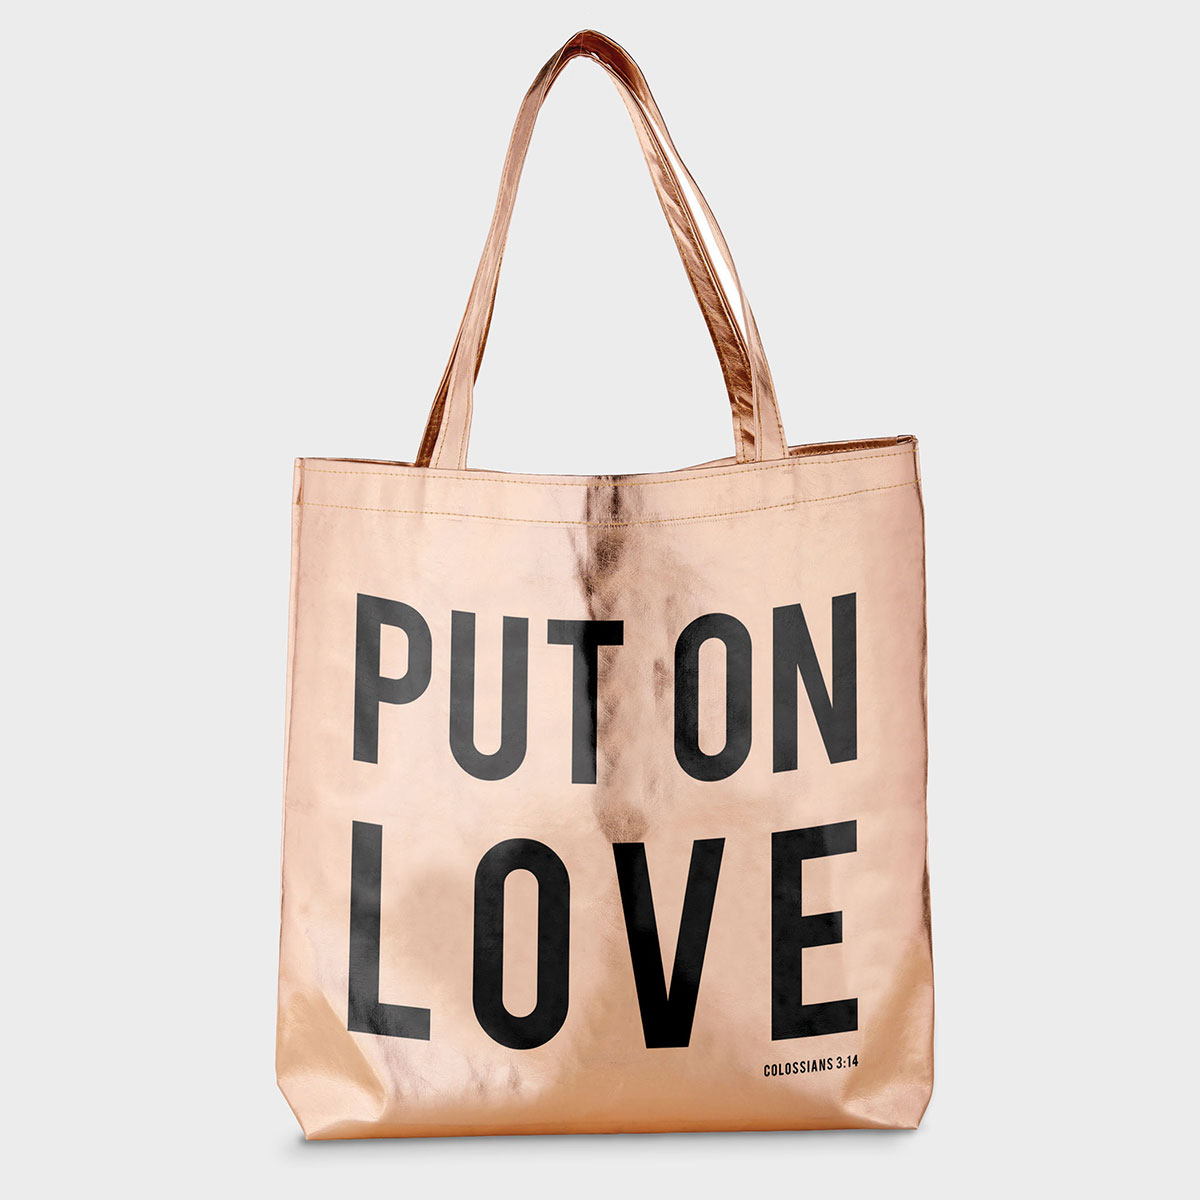 Put on Love - Rose Gold Tote Bag